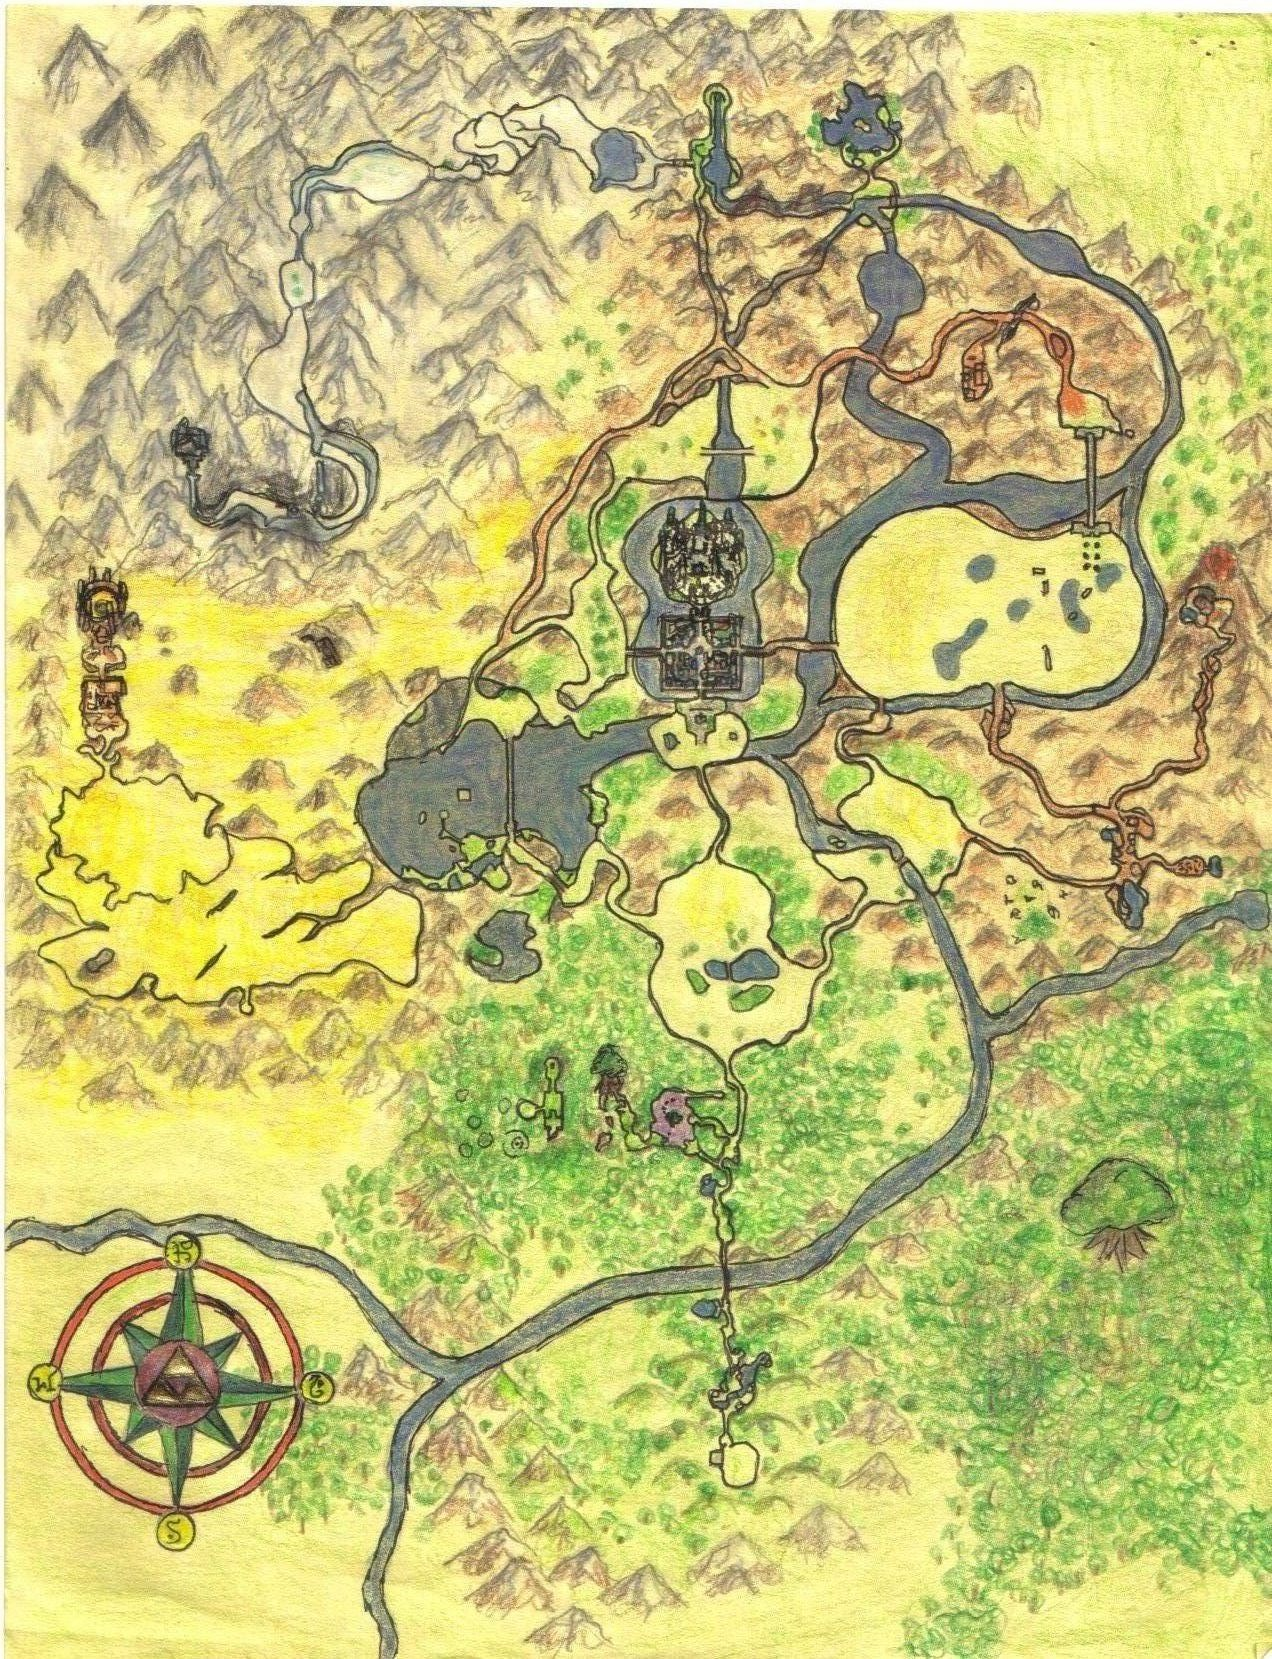 No Correlation Between Ocarina of Time and Twilight Princess Maps